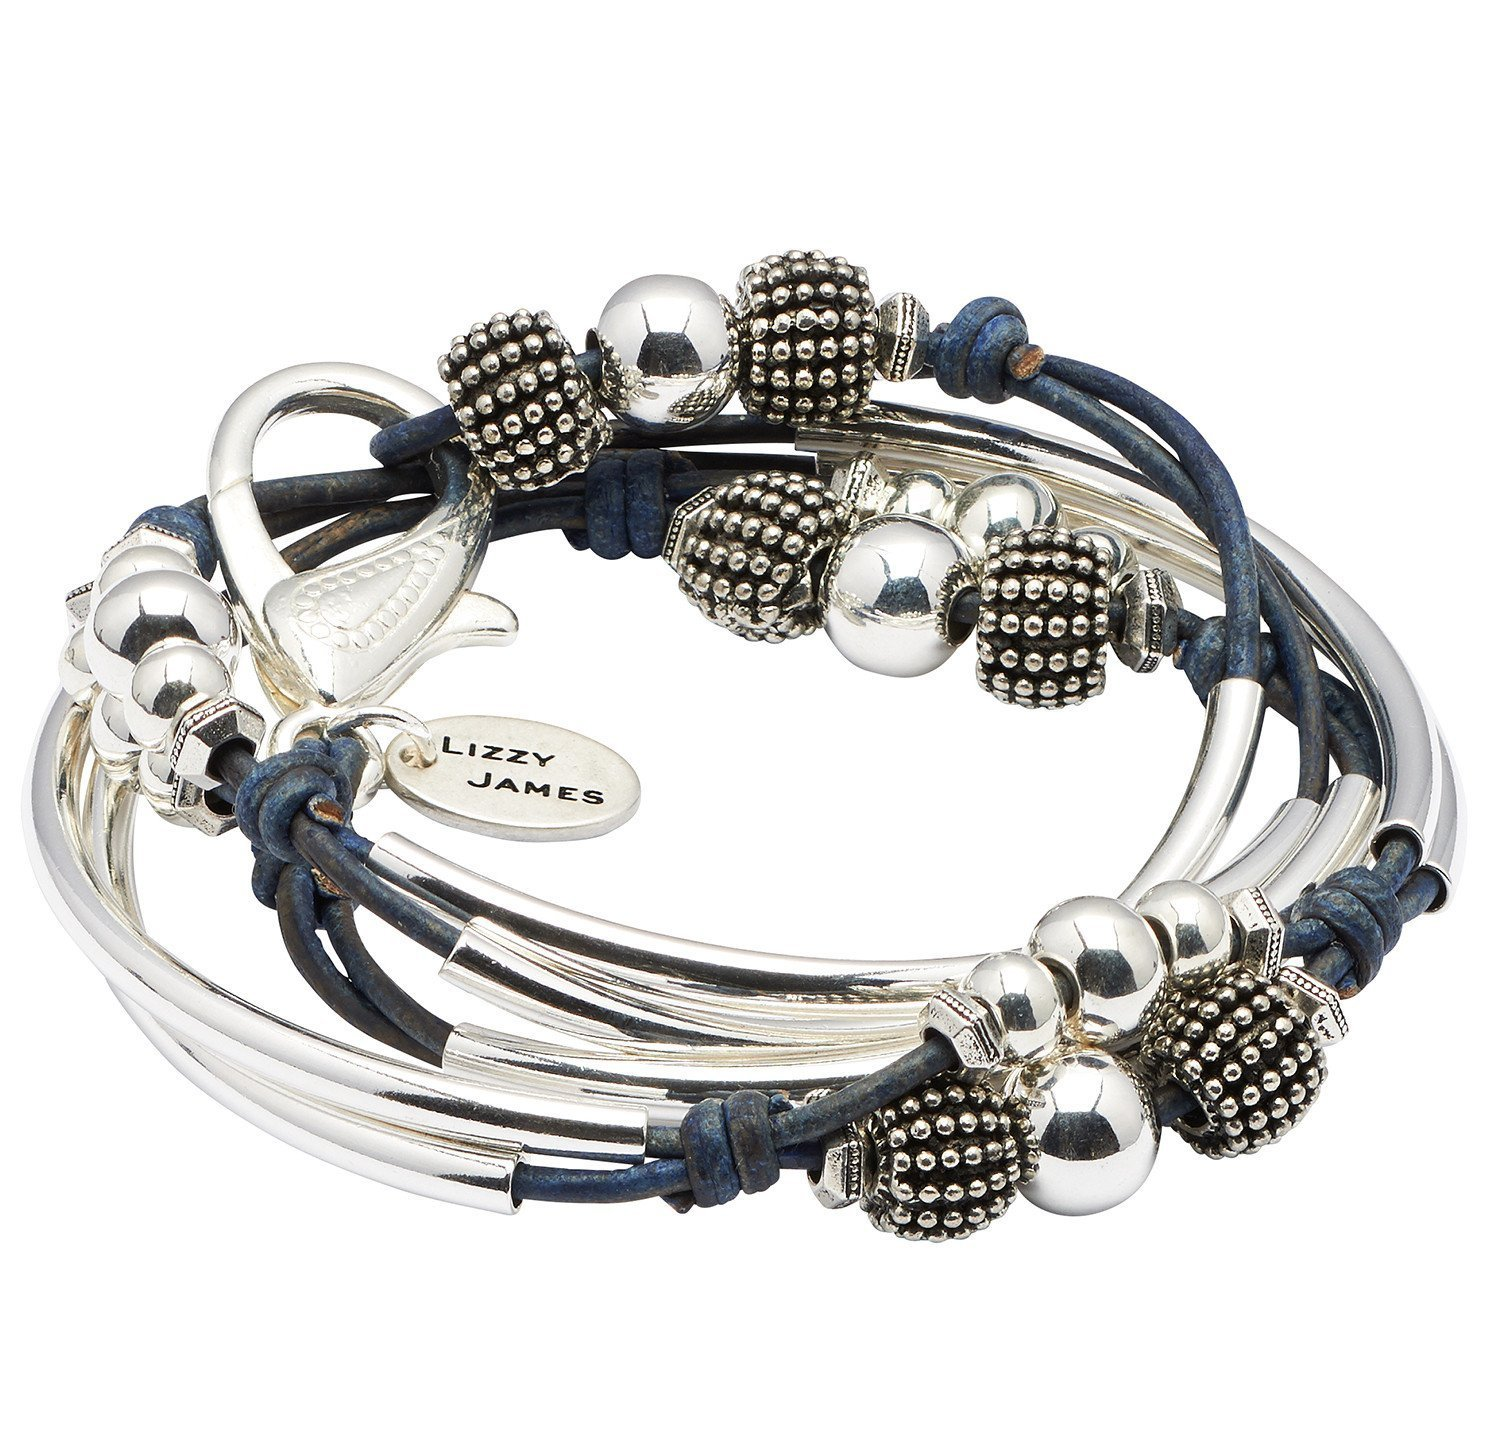 London Silverplate Medium Bracelet Necklace with Gloss Navy Blue Leather Wrap by Lizzy James